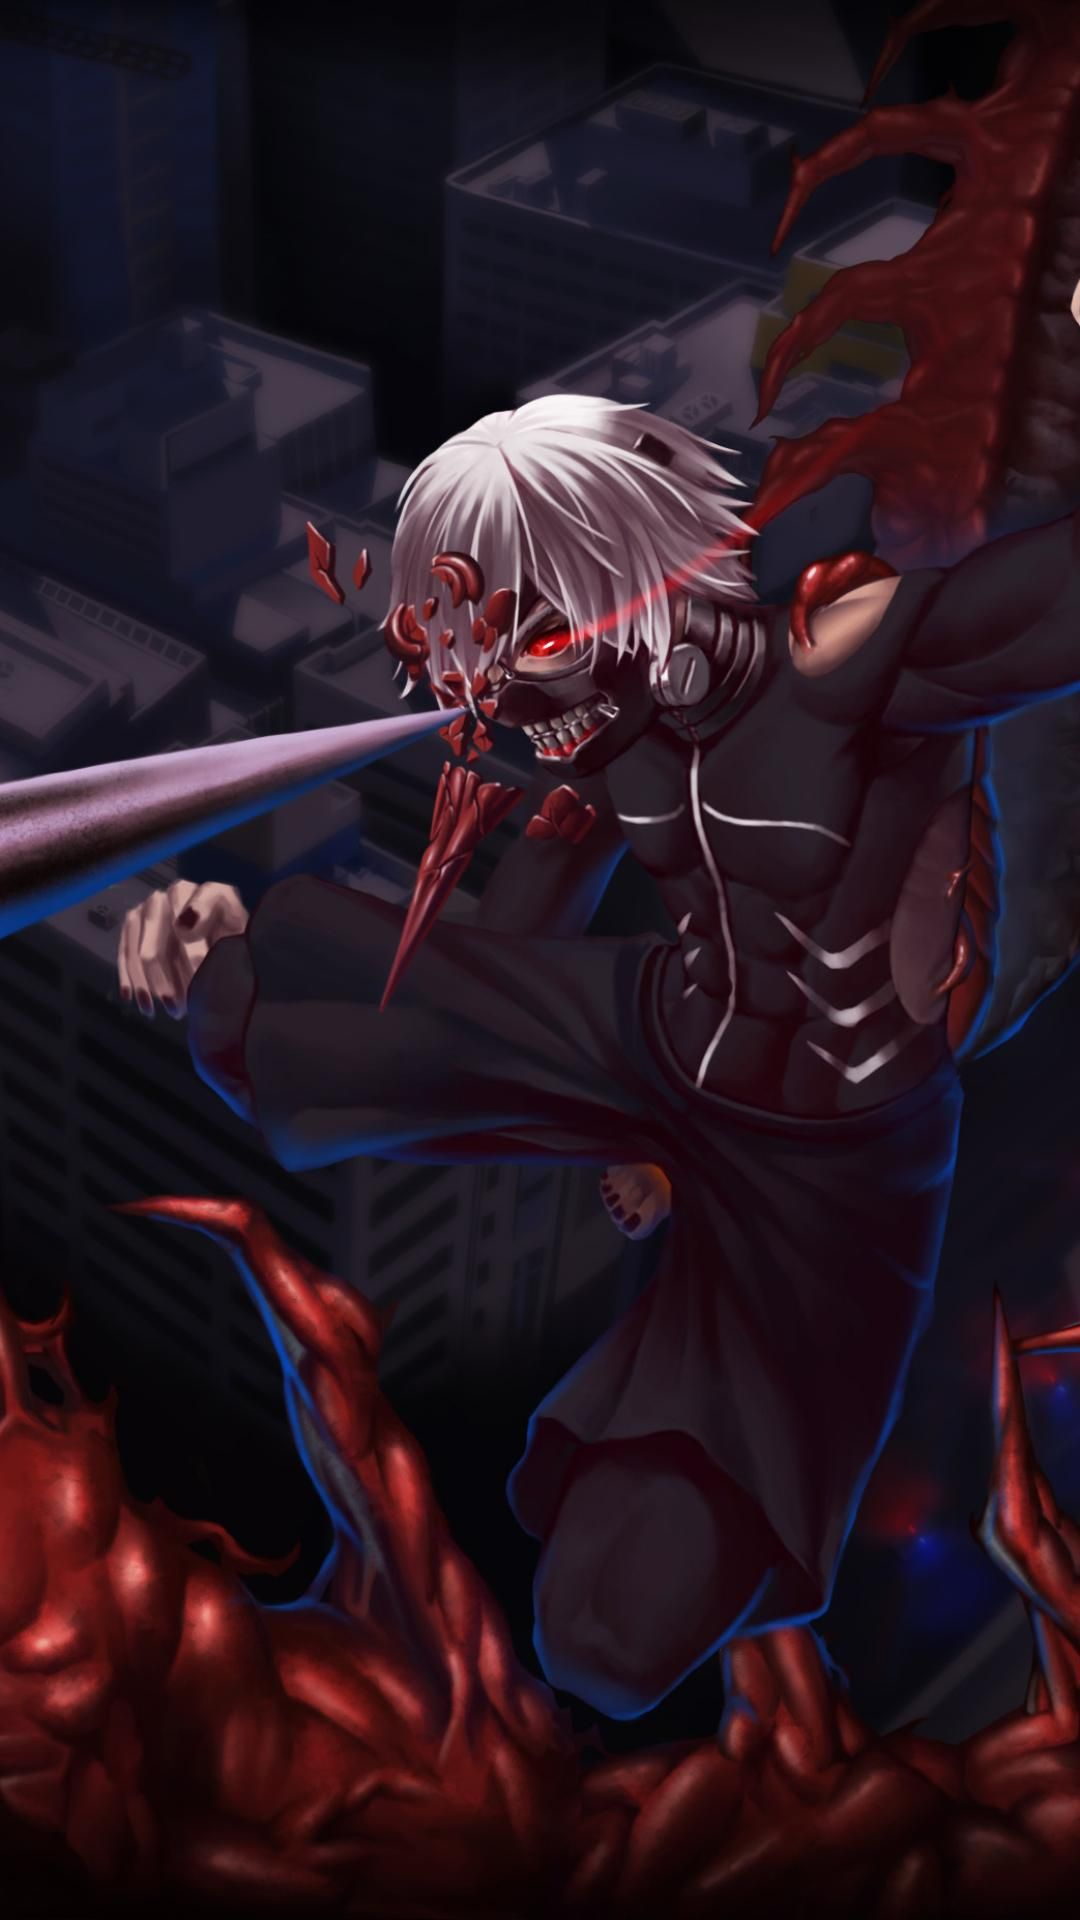 Tokyo Ghoul Hd Wallpaper For Android 3d Wallpapers Tokyo Ghoul Wallpapers Tokyo Ghoul Tokyo Ghoul Anime